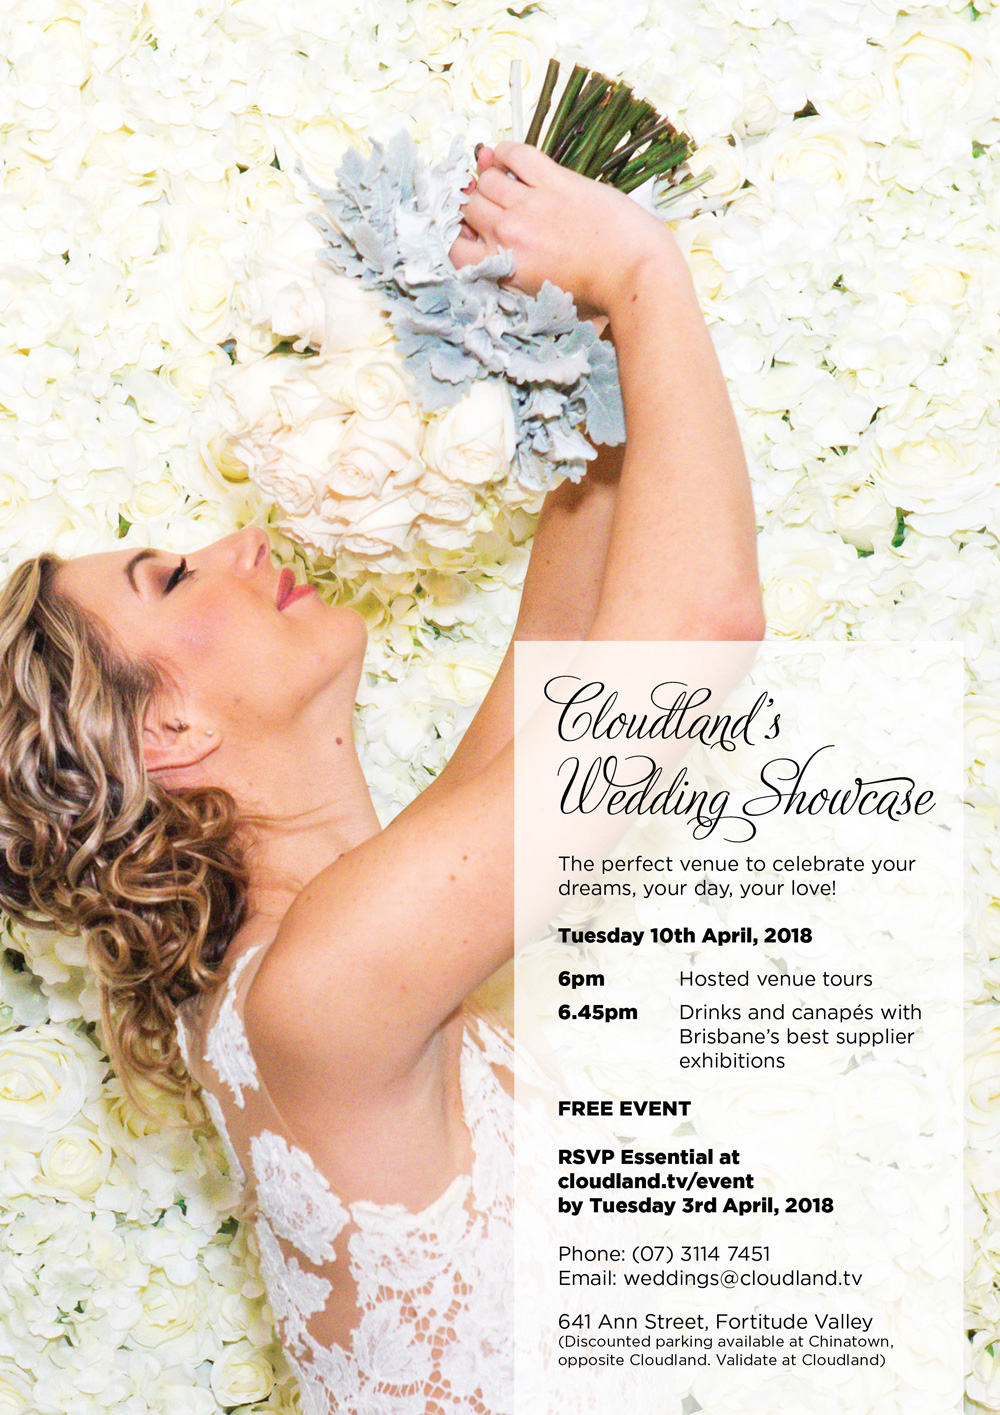 Cloudland Wedding Showcase